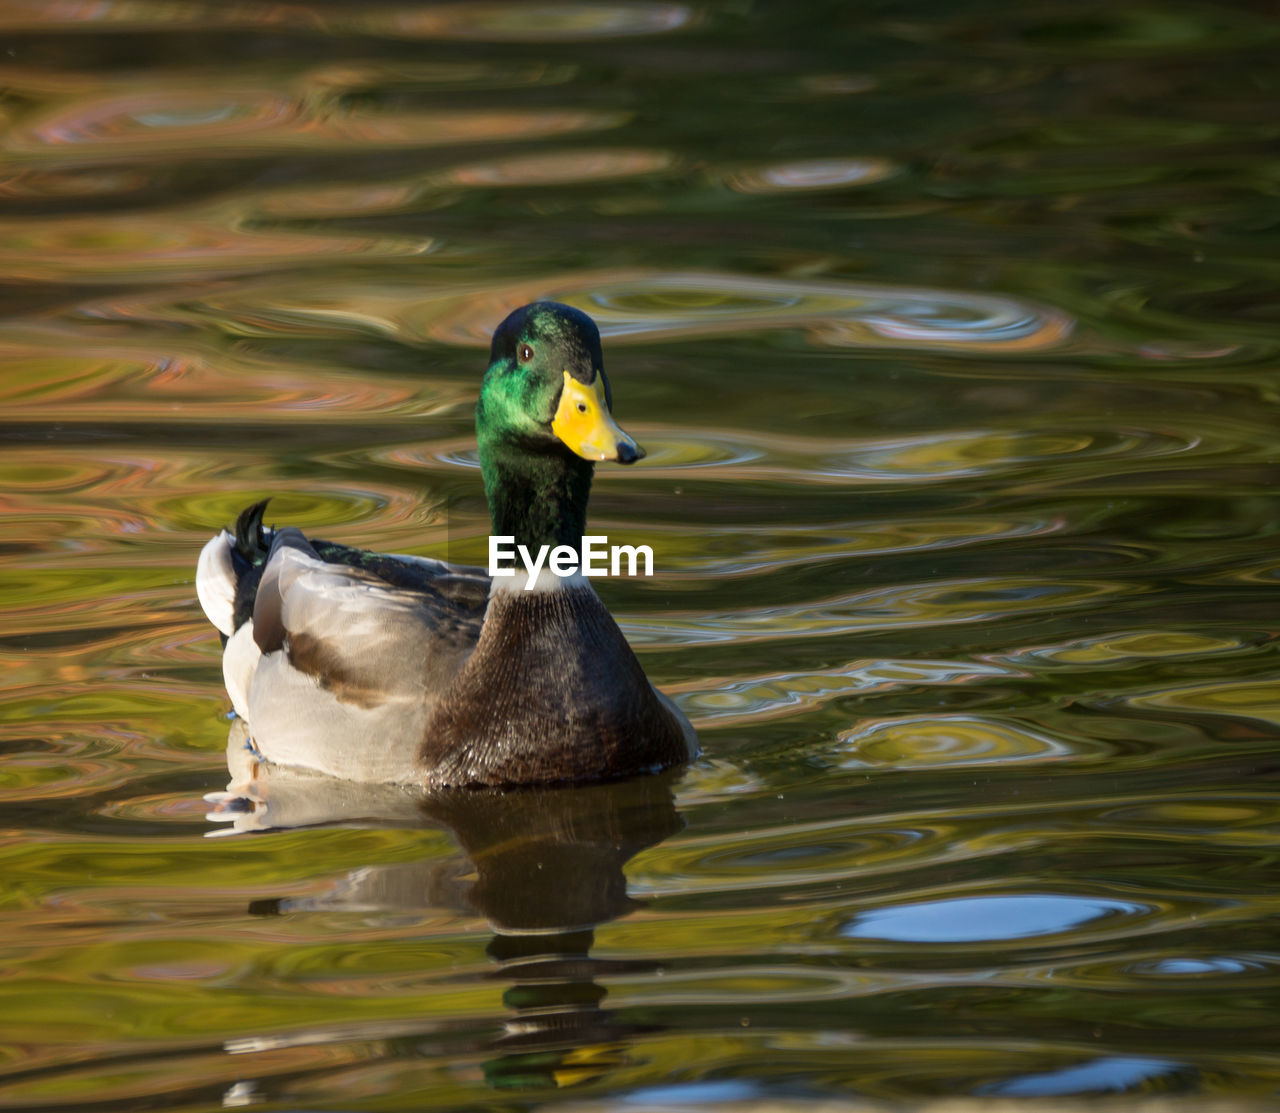 water, lake, vertebrate, animals in the wild, bird, animal themes, animal wildlife, waterfront, animal, swimming, duck, one animal, no people, water bird, day, poultry, nature, reflection, mallard duck, outdoors, floating on water